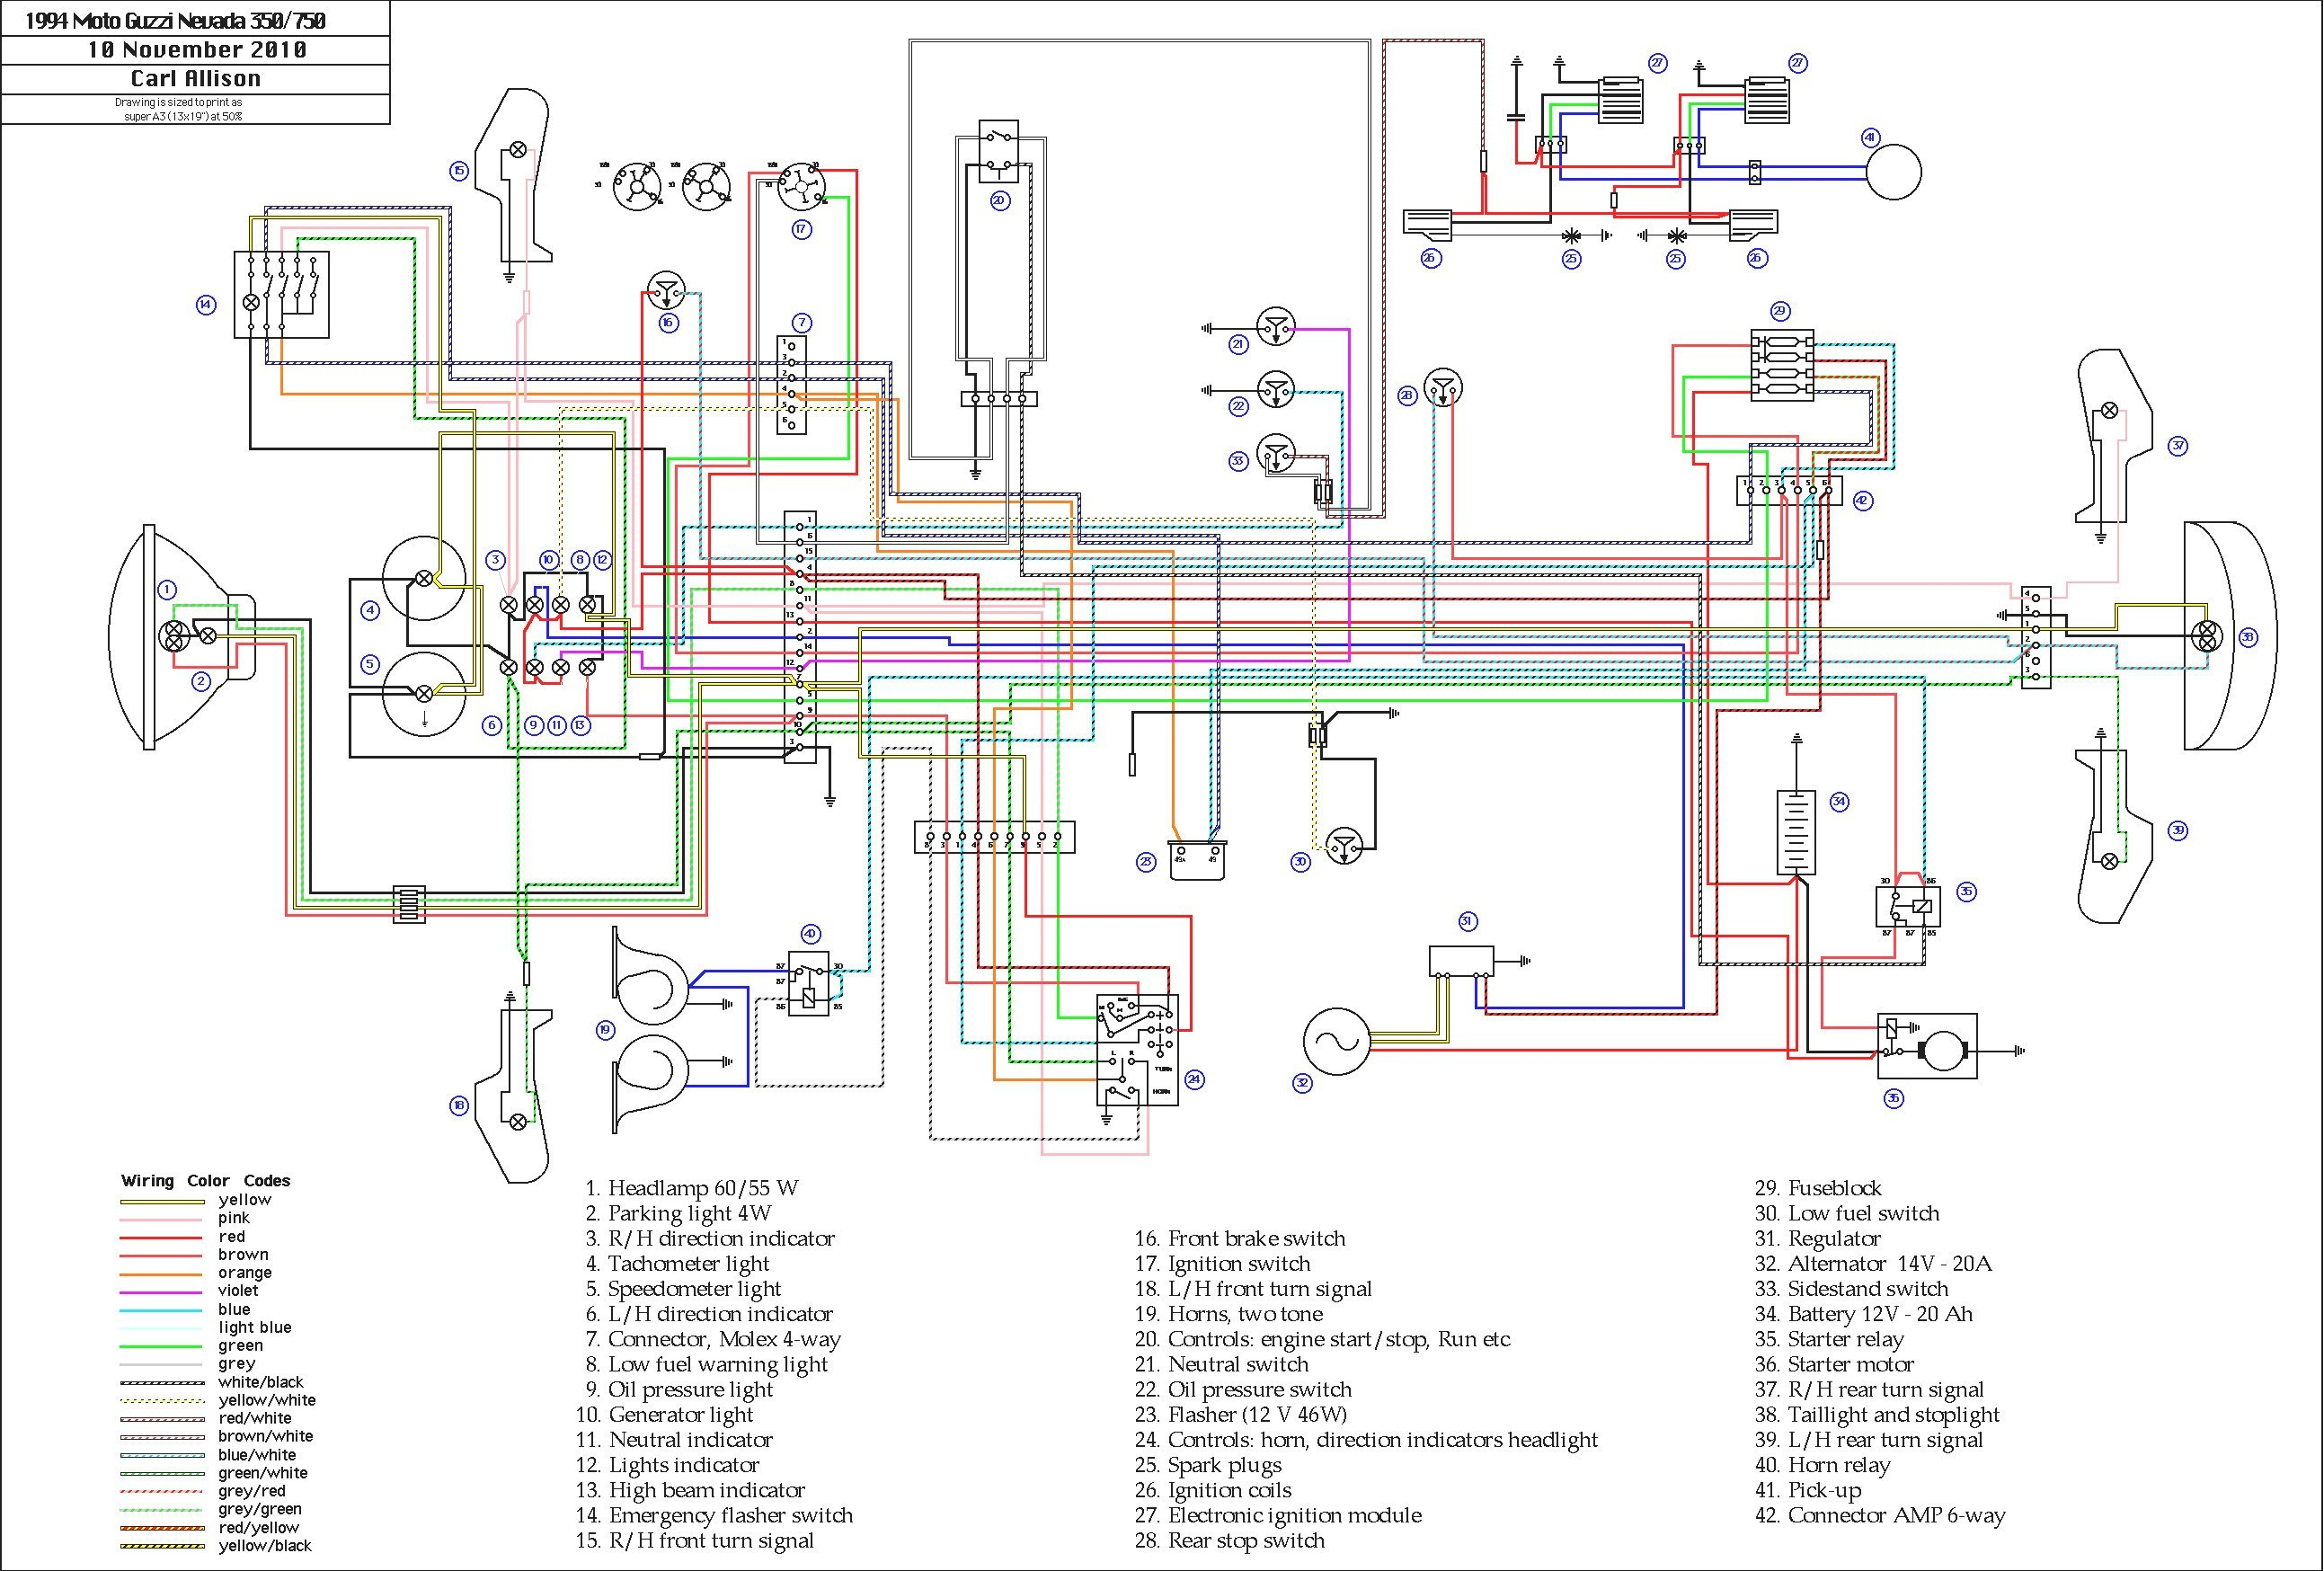 2011 Nissan Frontier Front Turn Signal Wiring Diagram from detoxicrecenze.com